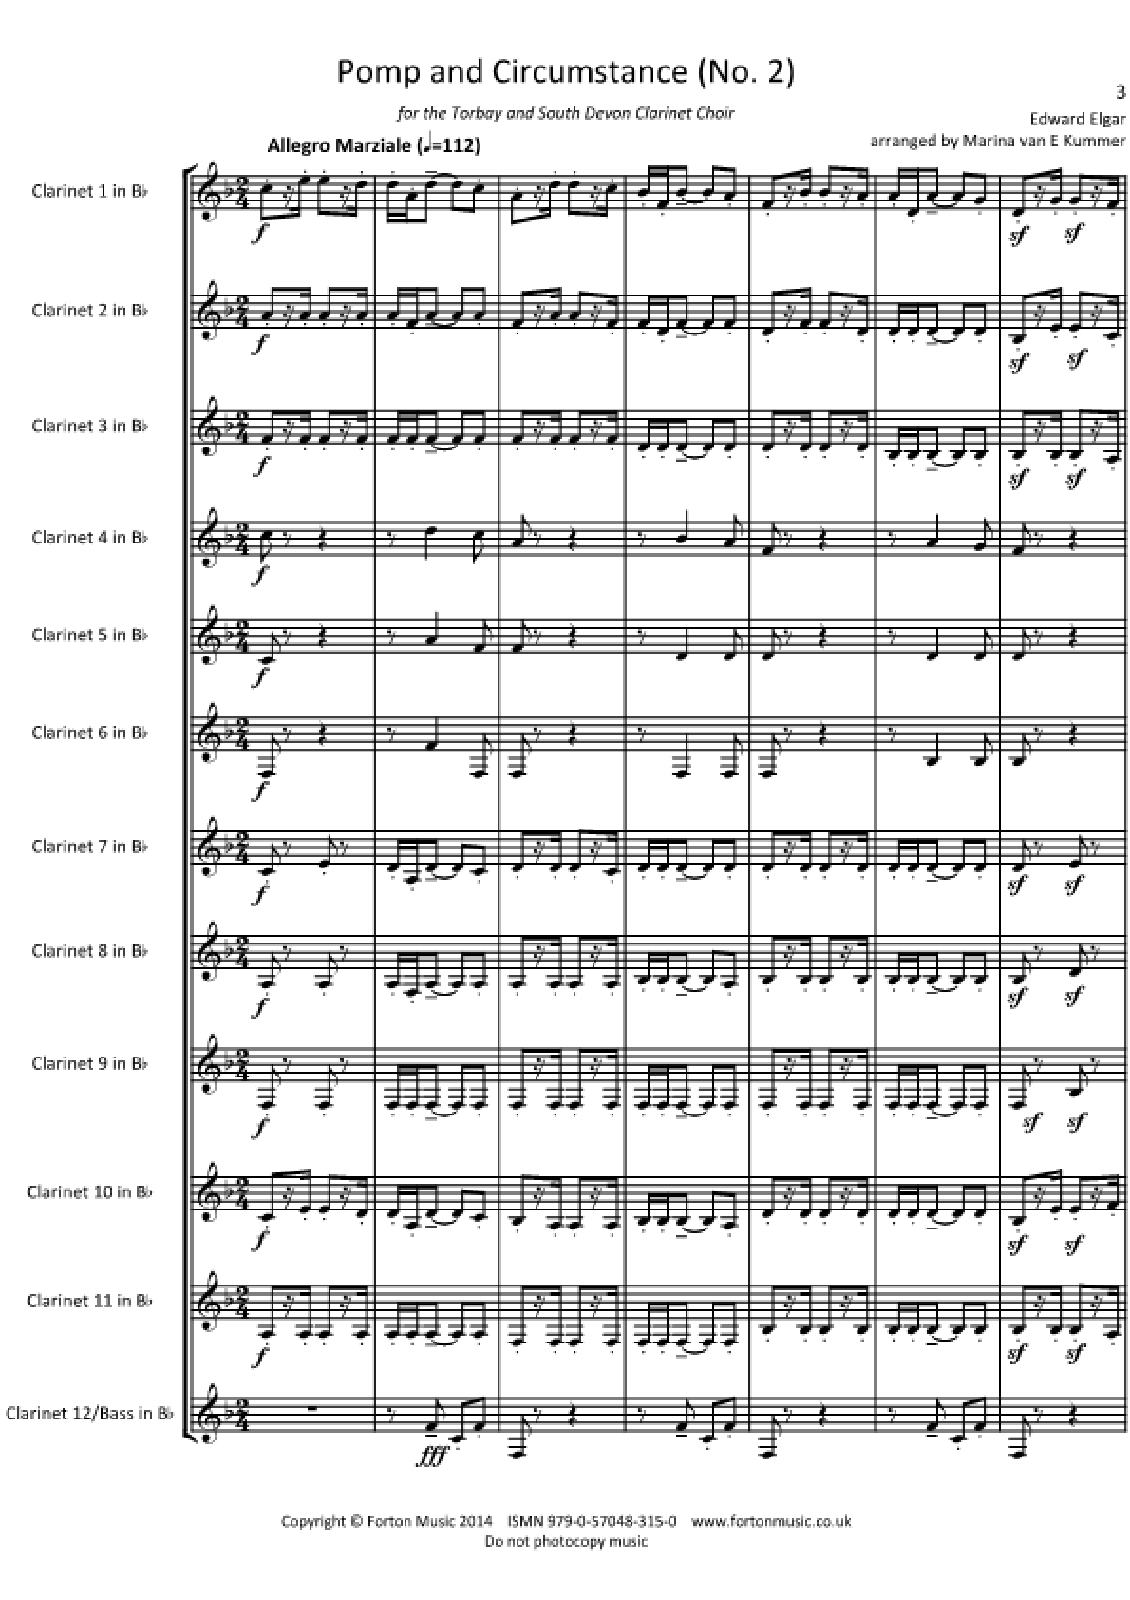 Pomp and Circumstance no 2